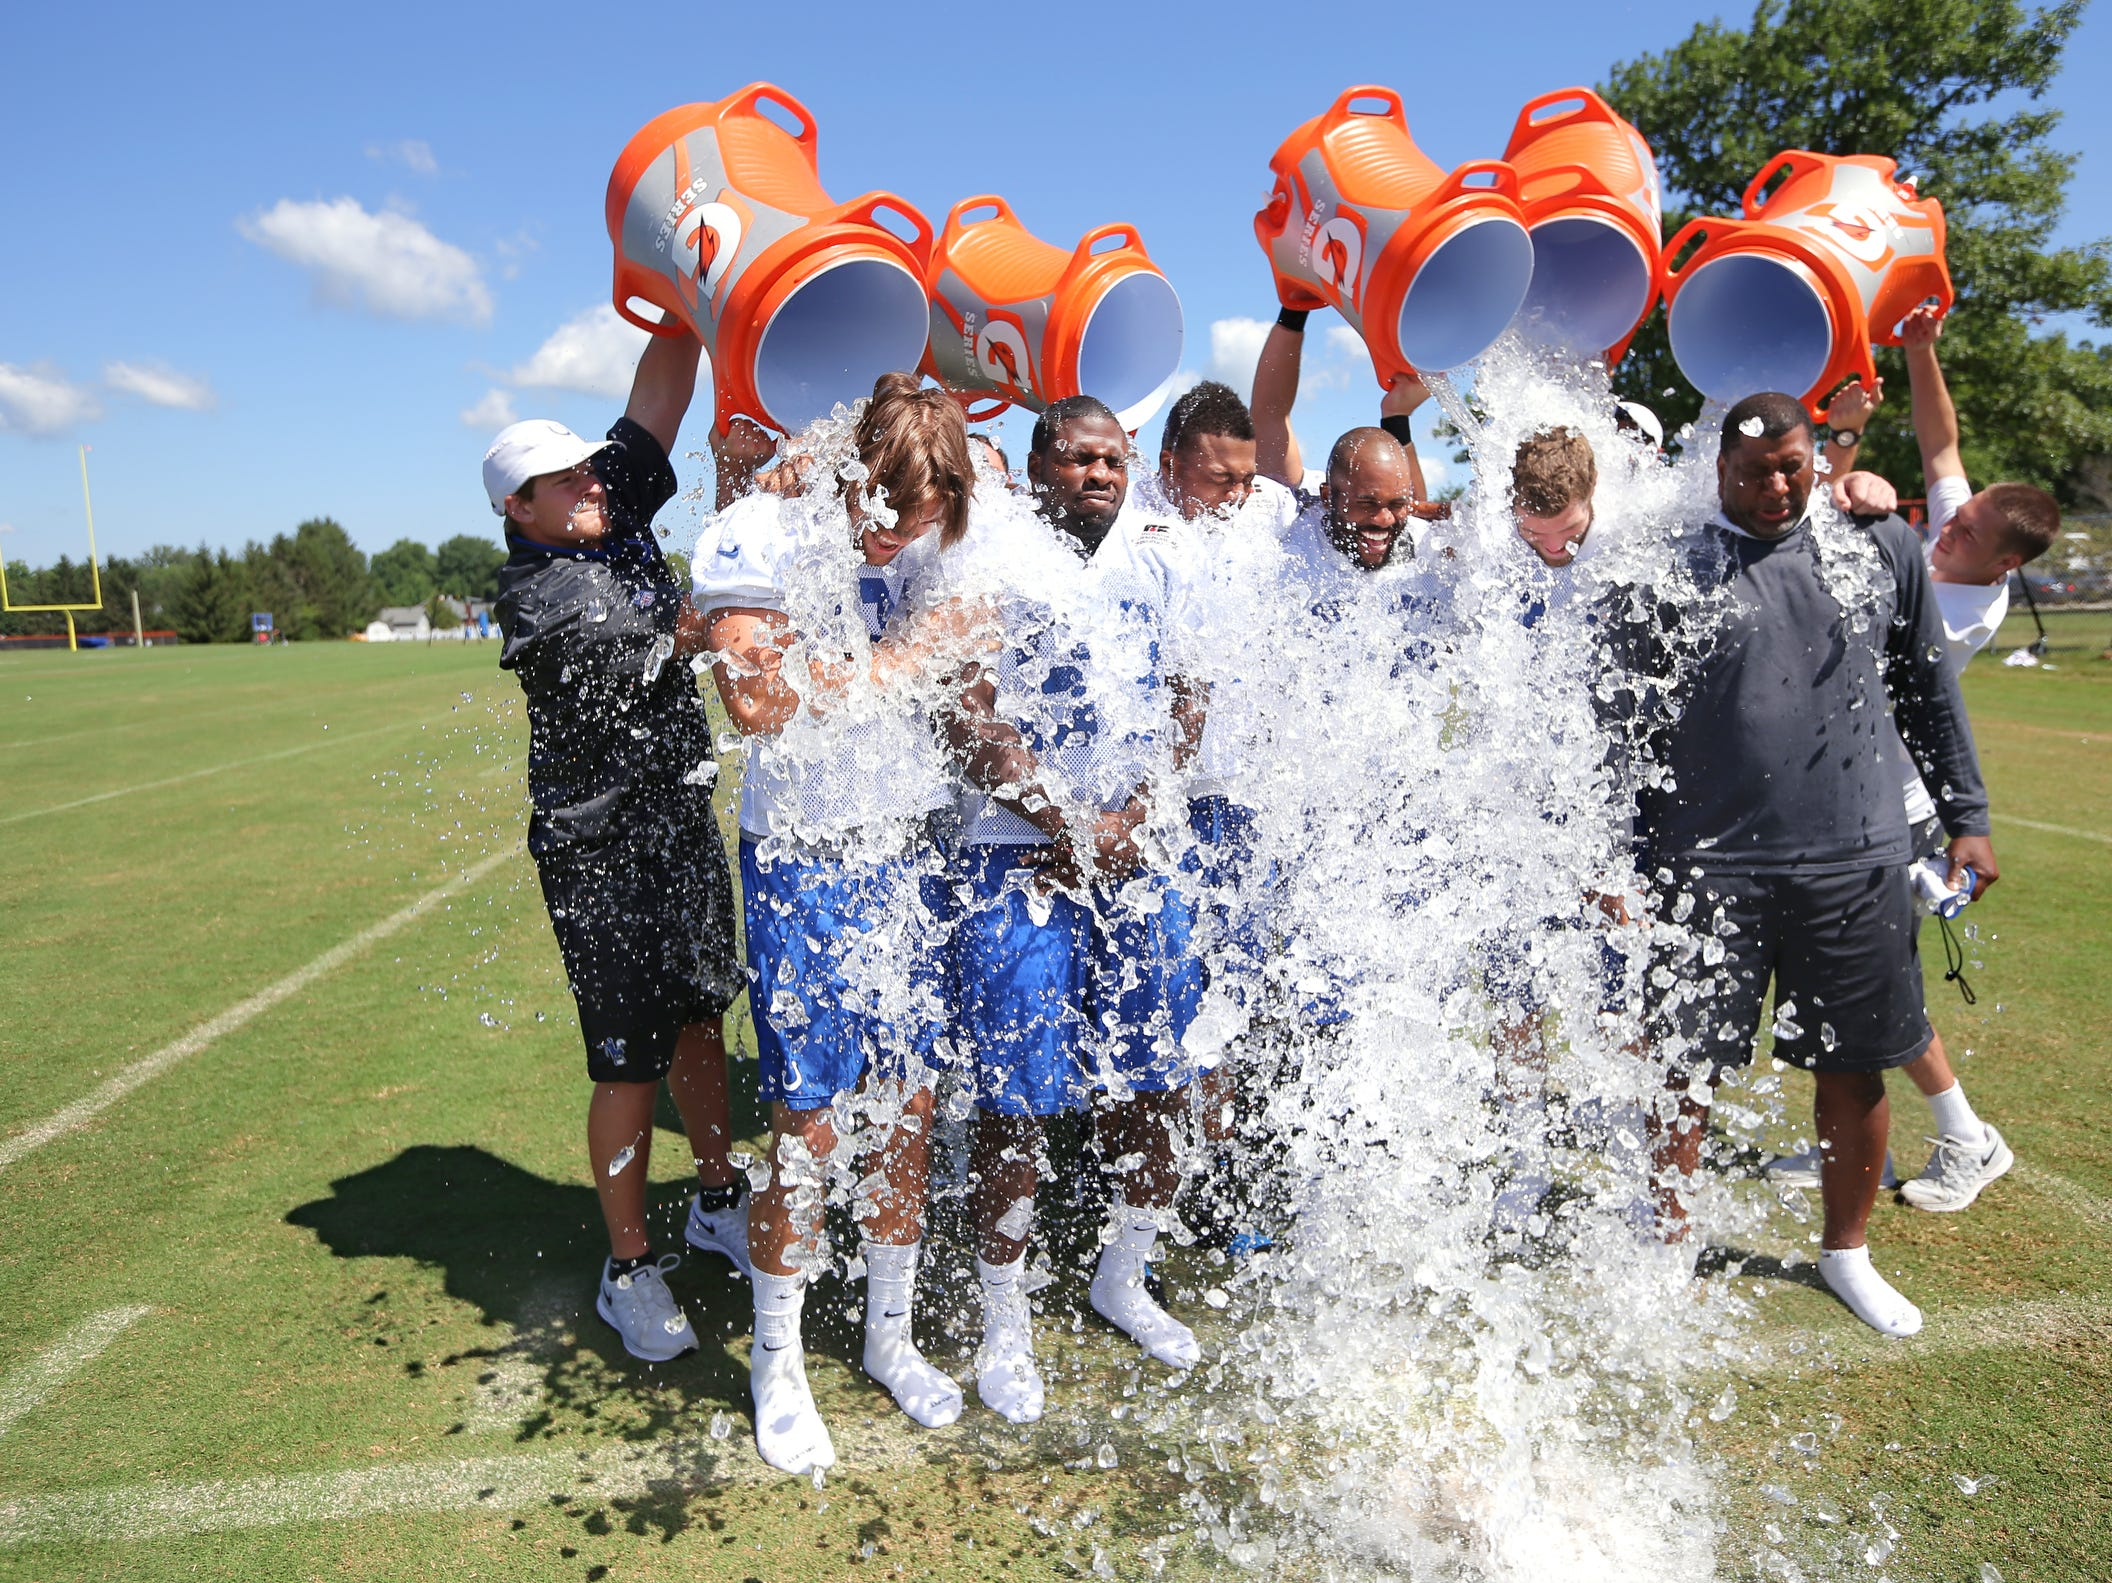 The Indianapolis Colts tight ends (from left) Coby Fleener, Dwayne Allen, Weslye Saunders, Erik Swoope and Jack Doyle have buckets of ice water poured over them as they took the ALS Ice Bucket Challenge after the last day of Colts training camp at Anderson University on Wednesday, August 13, 2014.